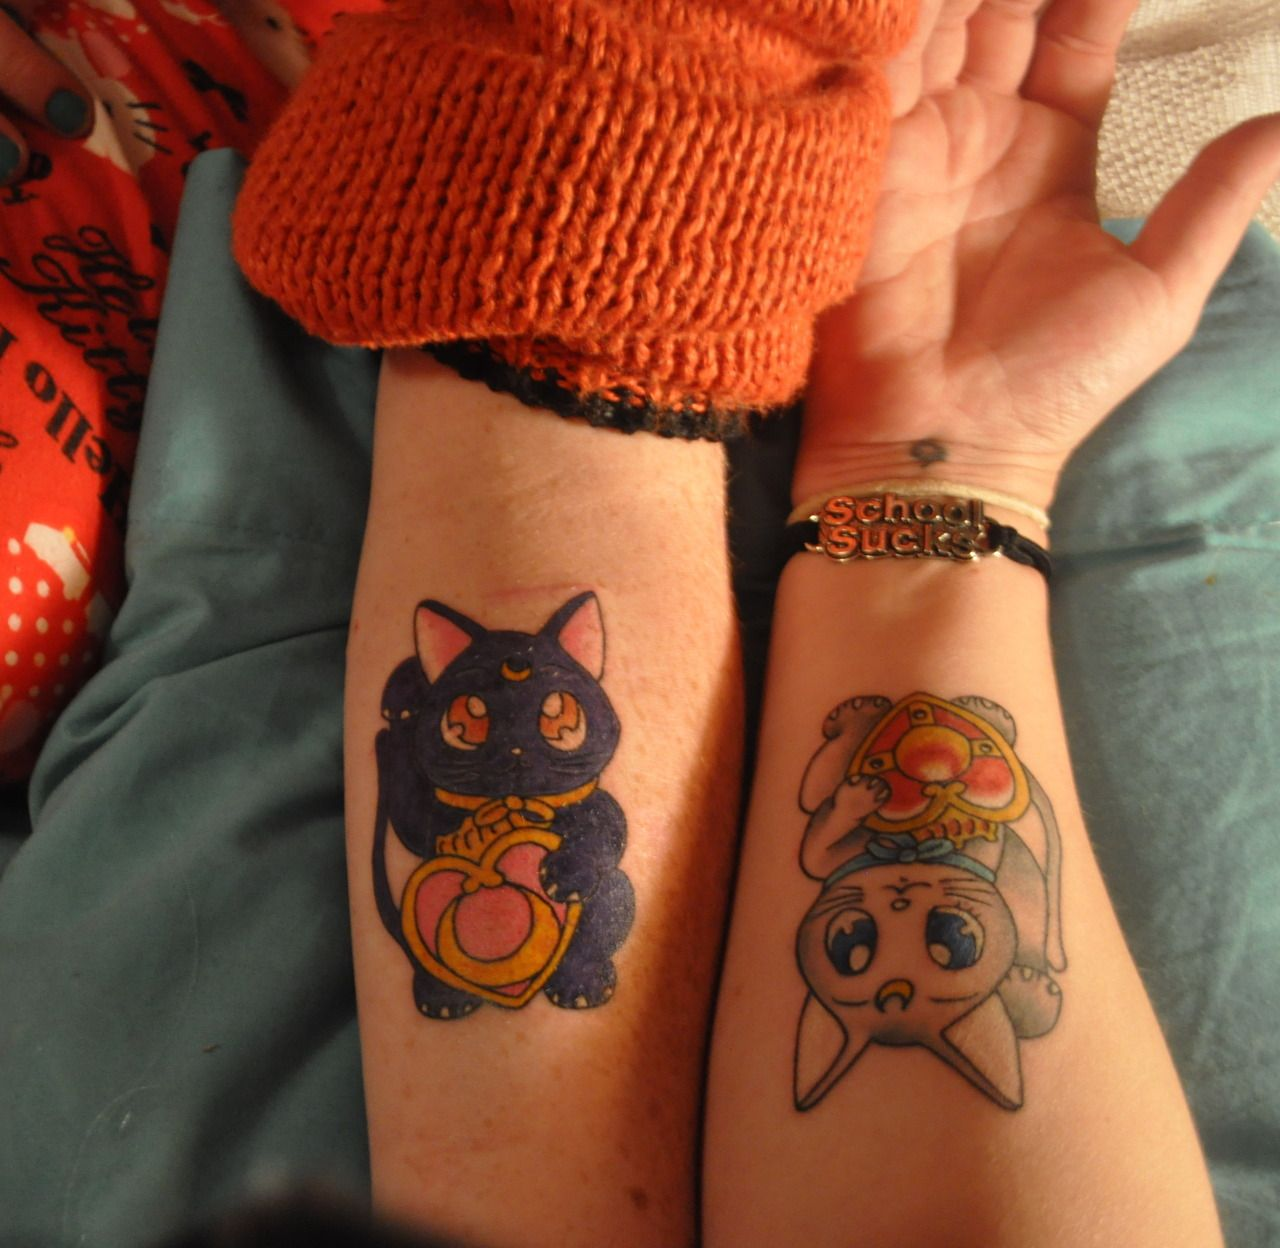 Artemis And Luna Tattoo Sailor Moon Tattoo Lucky Cat Tattoo If I Had A Bestie Who Watched Sailor Moon We D T Sailor Moon Tattoo Lucky Cat Tattoo Tattoos